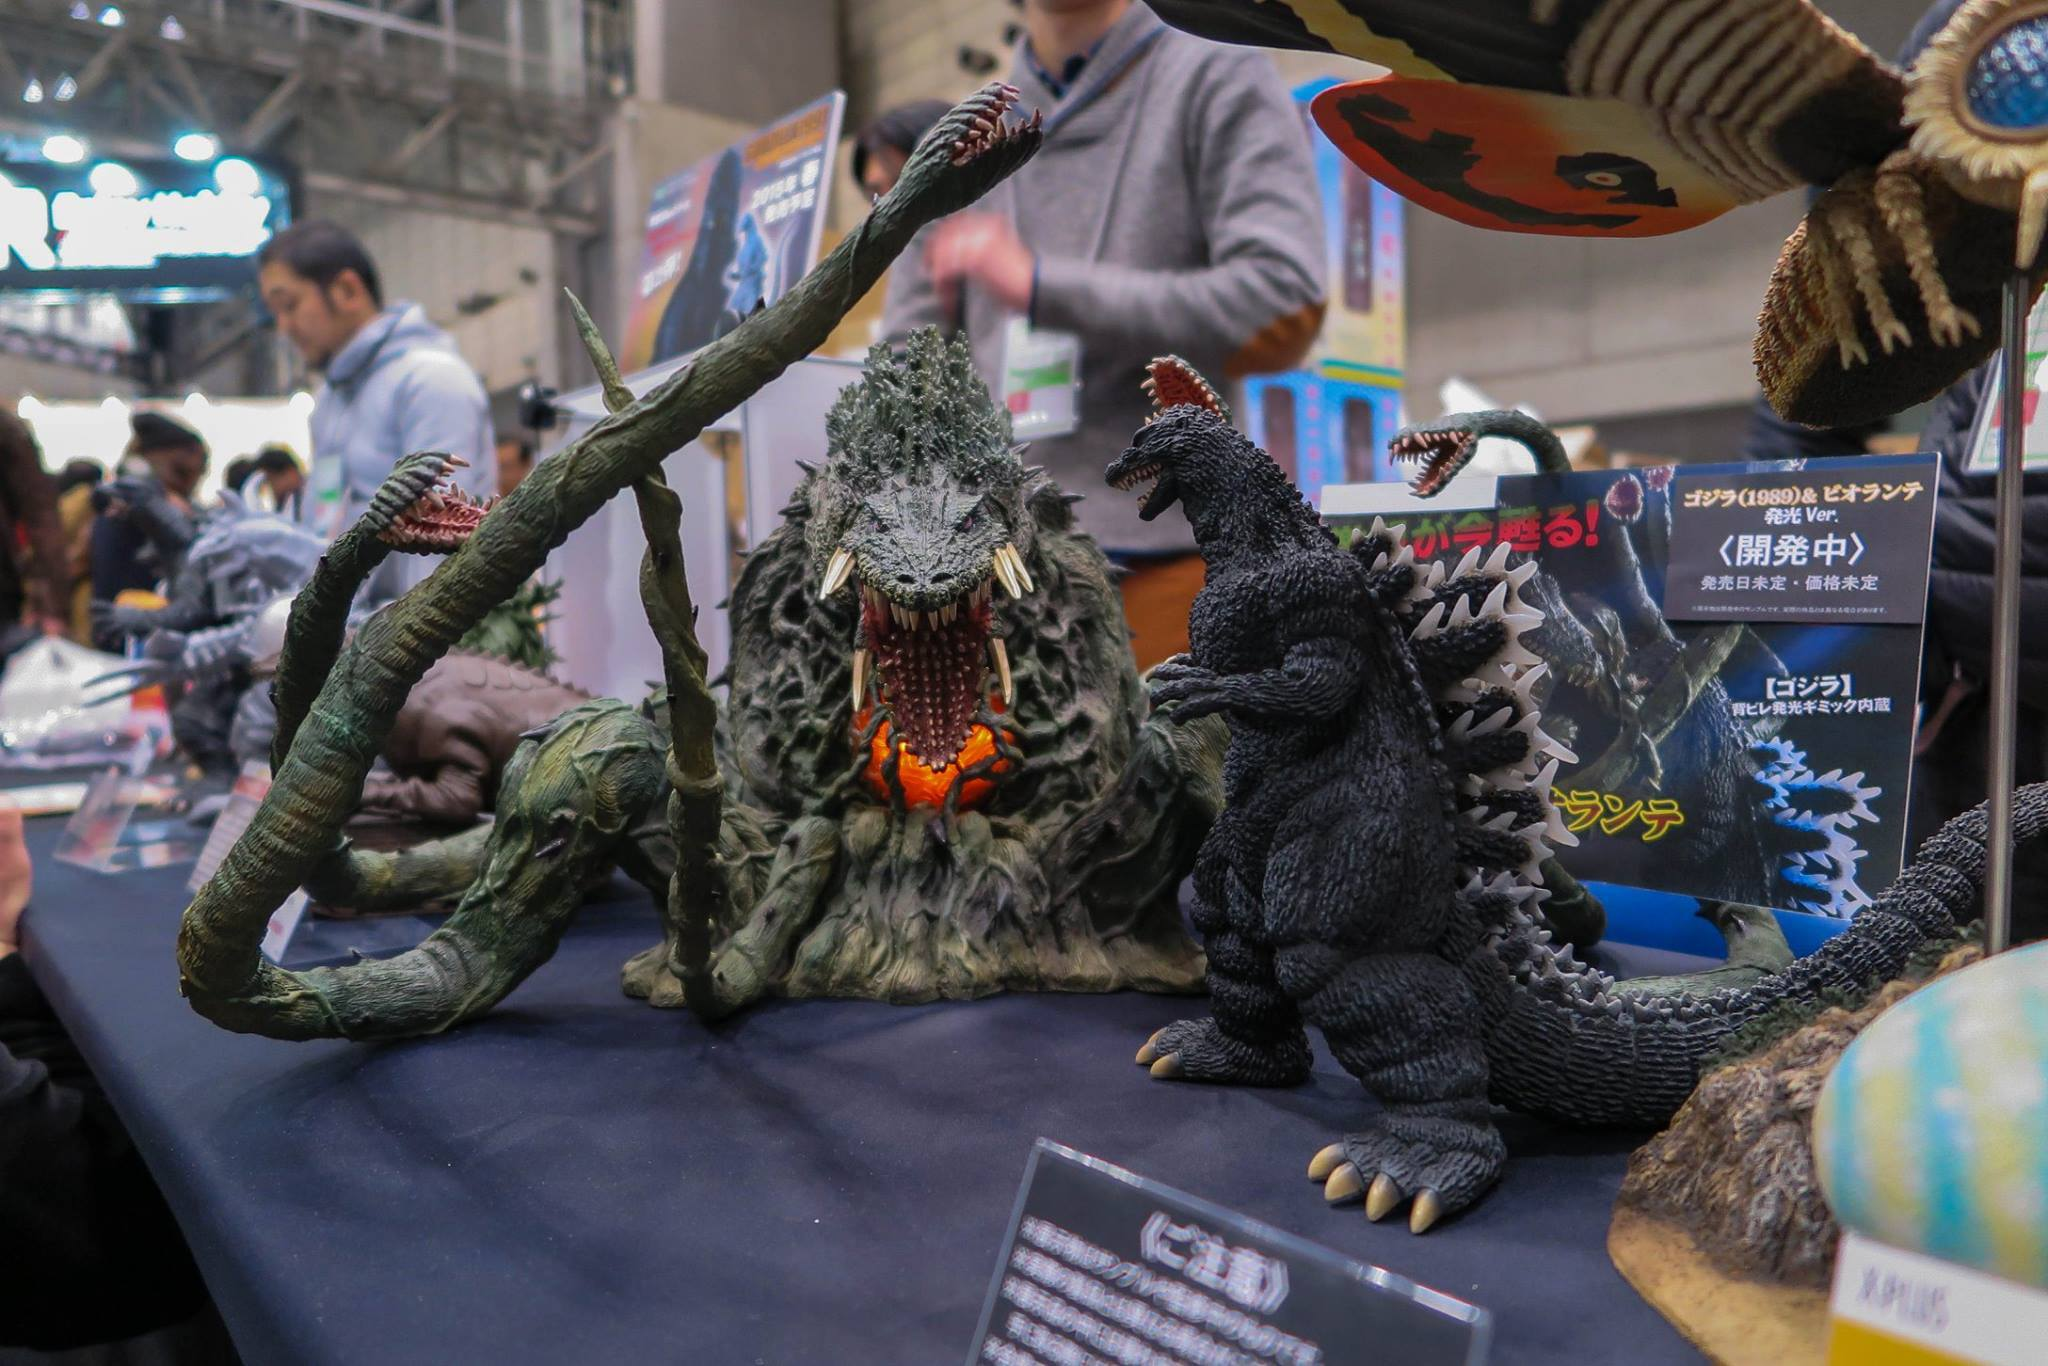 Large Monster Series Biollante on the X-Plus table at Winter Wonder Festival.